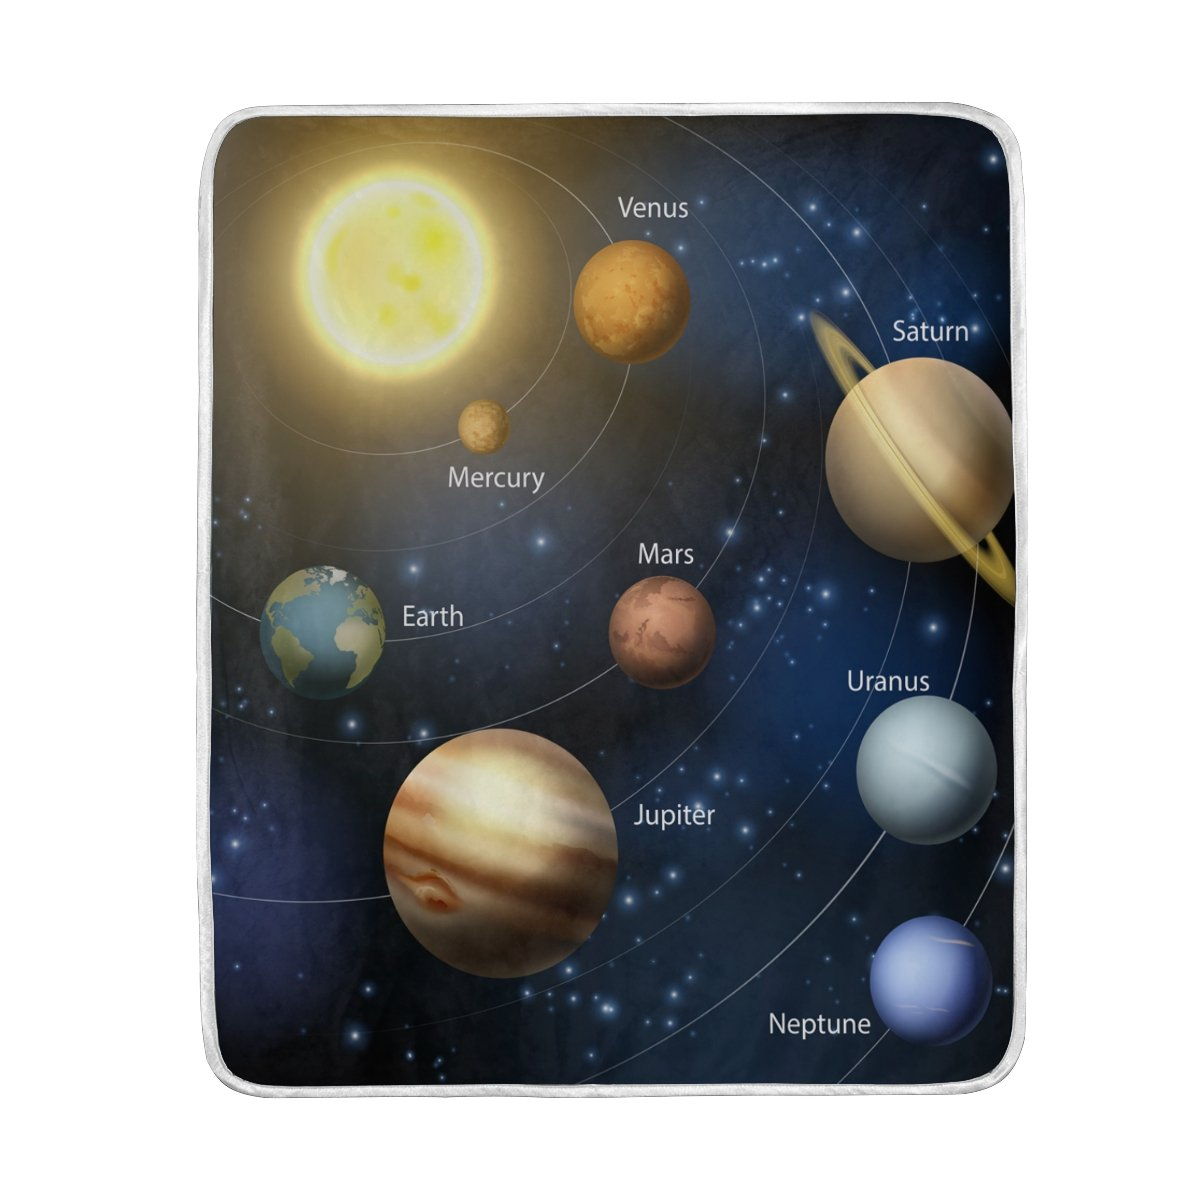 ALAZA Planets In The Solar System Blanket Luxury Throw Personalized Stylish Fuzzy Soft Warm Lightweight Blanket for Bed Counch All Season Unisex Adult Men Women Boys Girls 50x60 inches